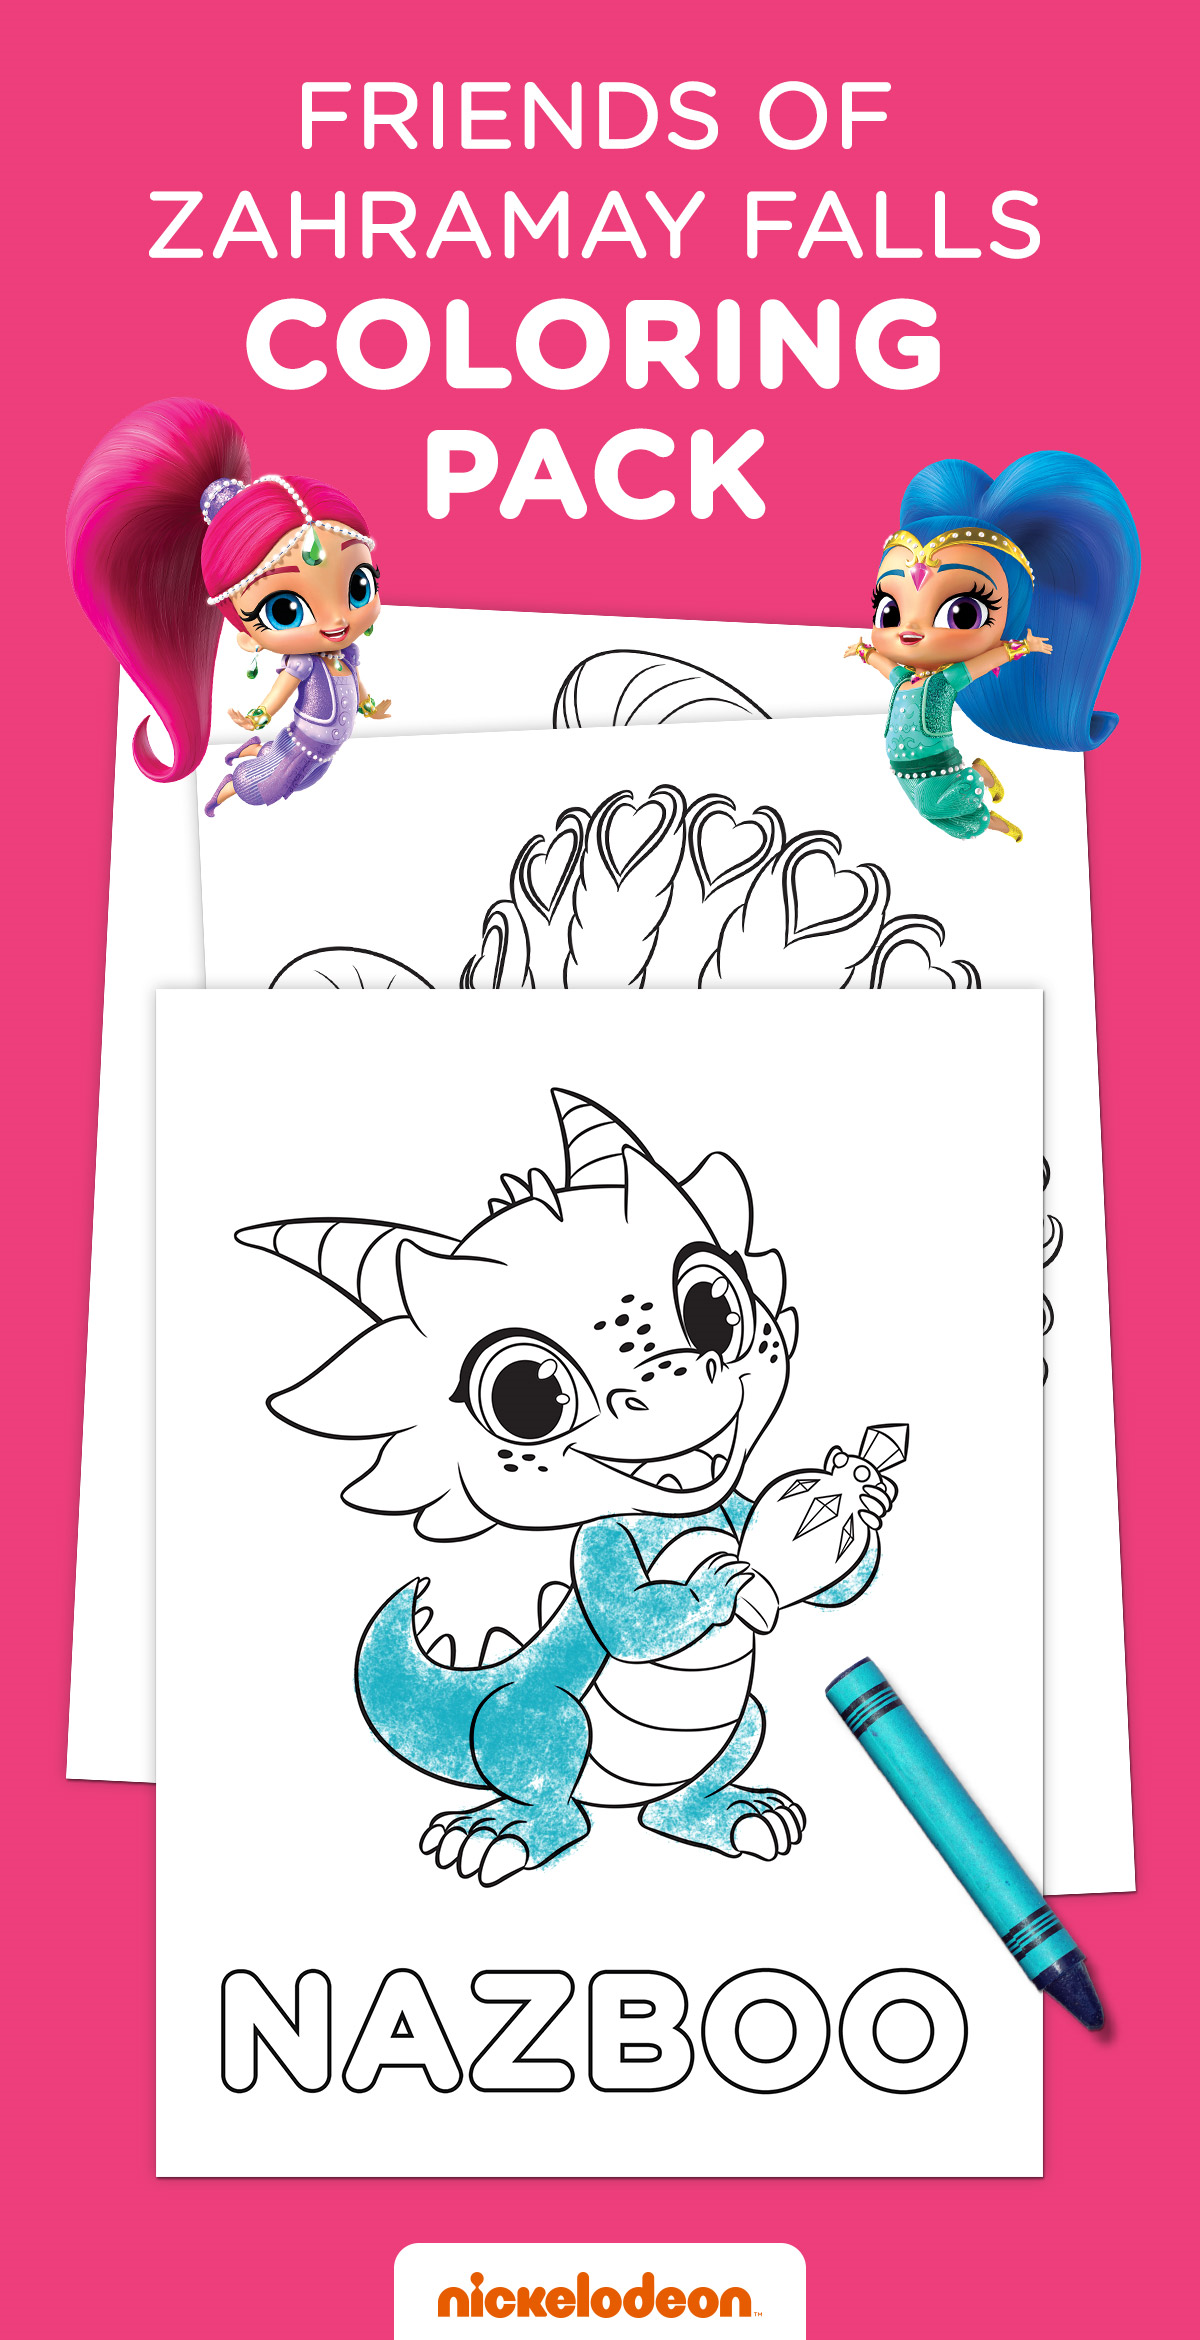 Printable coloring pages shimmer and shine - New Friends Of Zahramay Falls Coloring Pack Shimmer E Shine